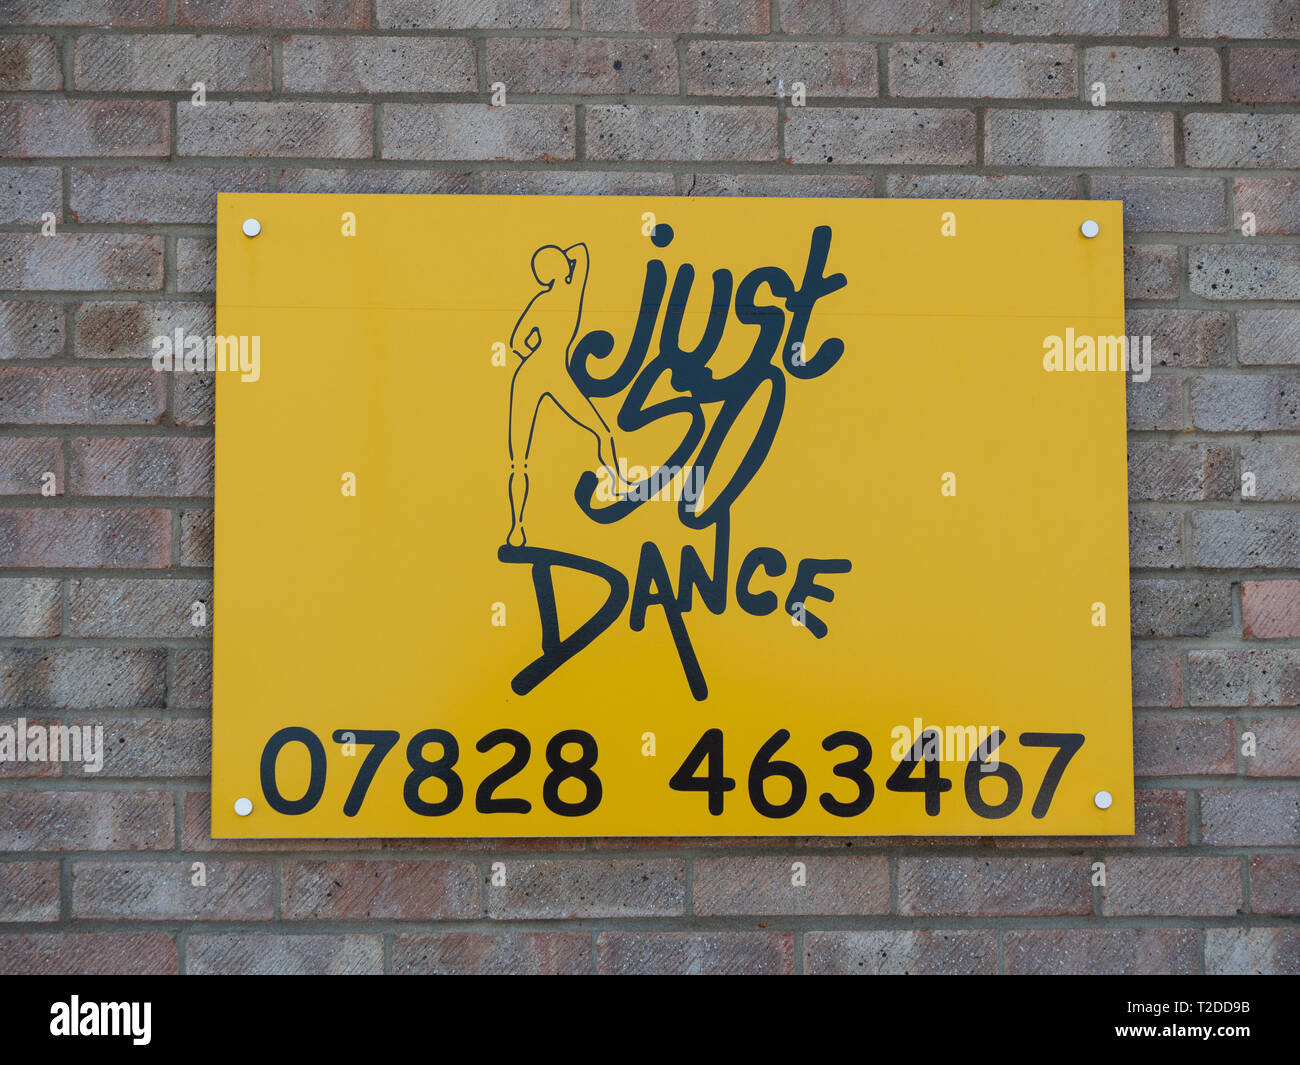 Sign on side of building indicating location of dance school in Westbury, Wiltshire, UK. - Stock Image